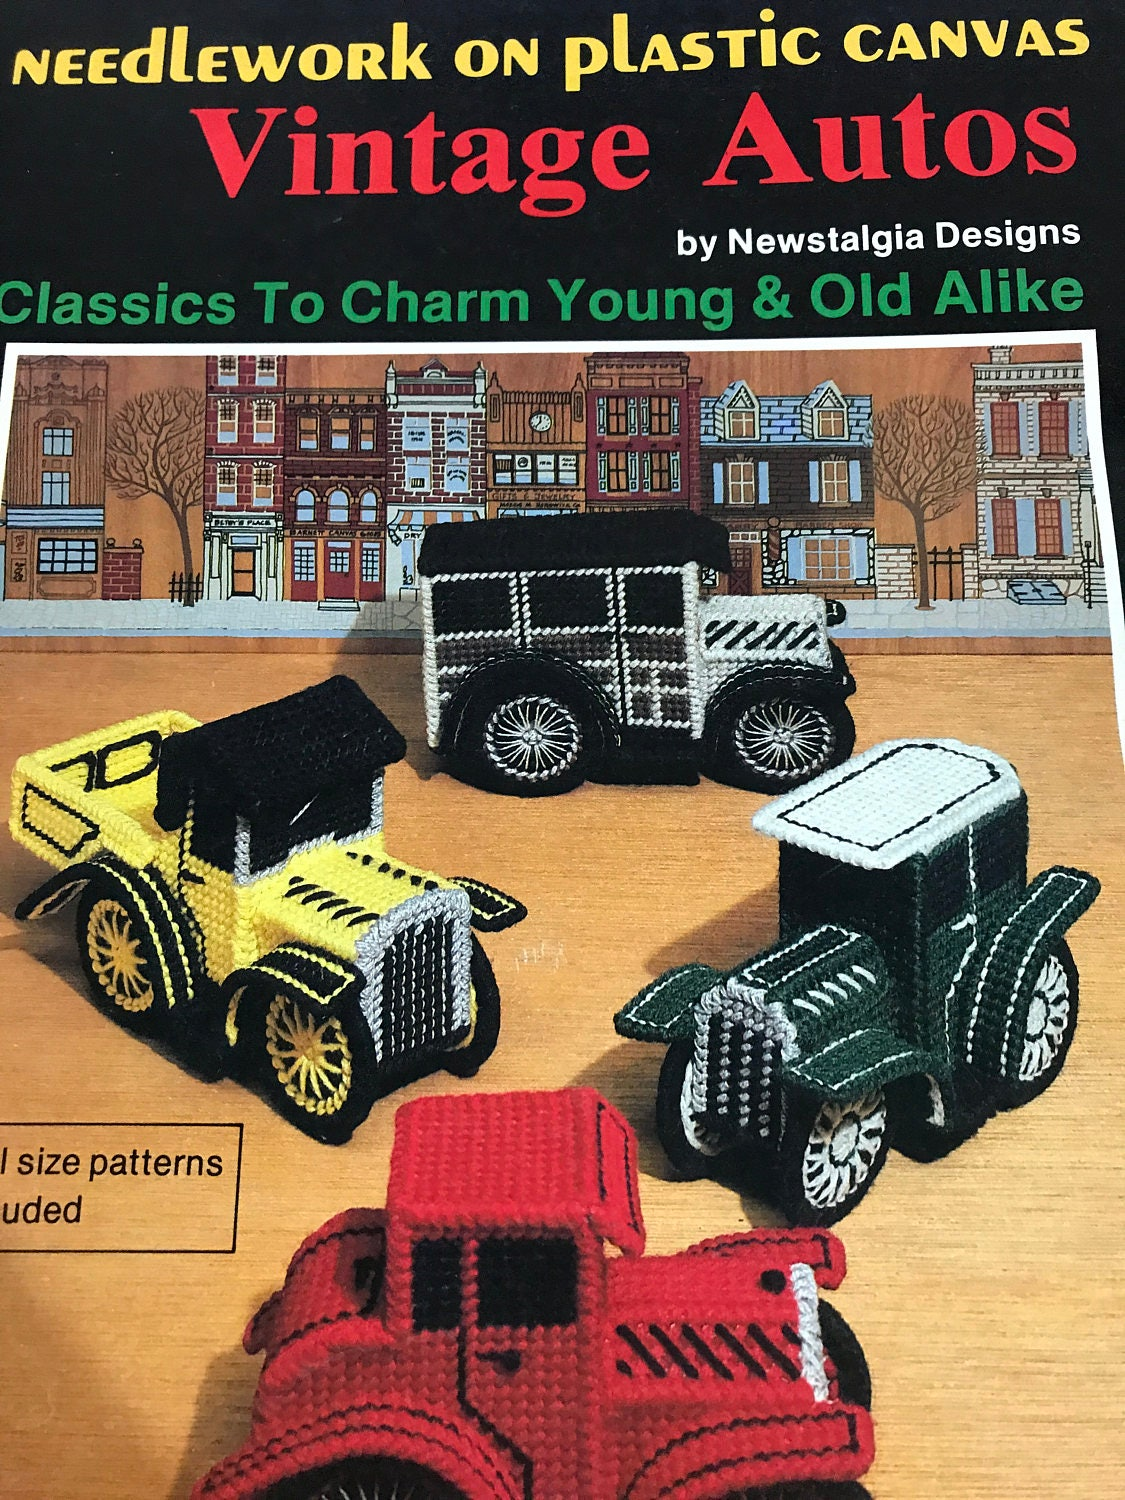 Vintage Needlework in Plastic Canvas Vintage Autos Pattern book from ...